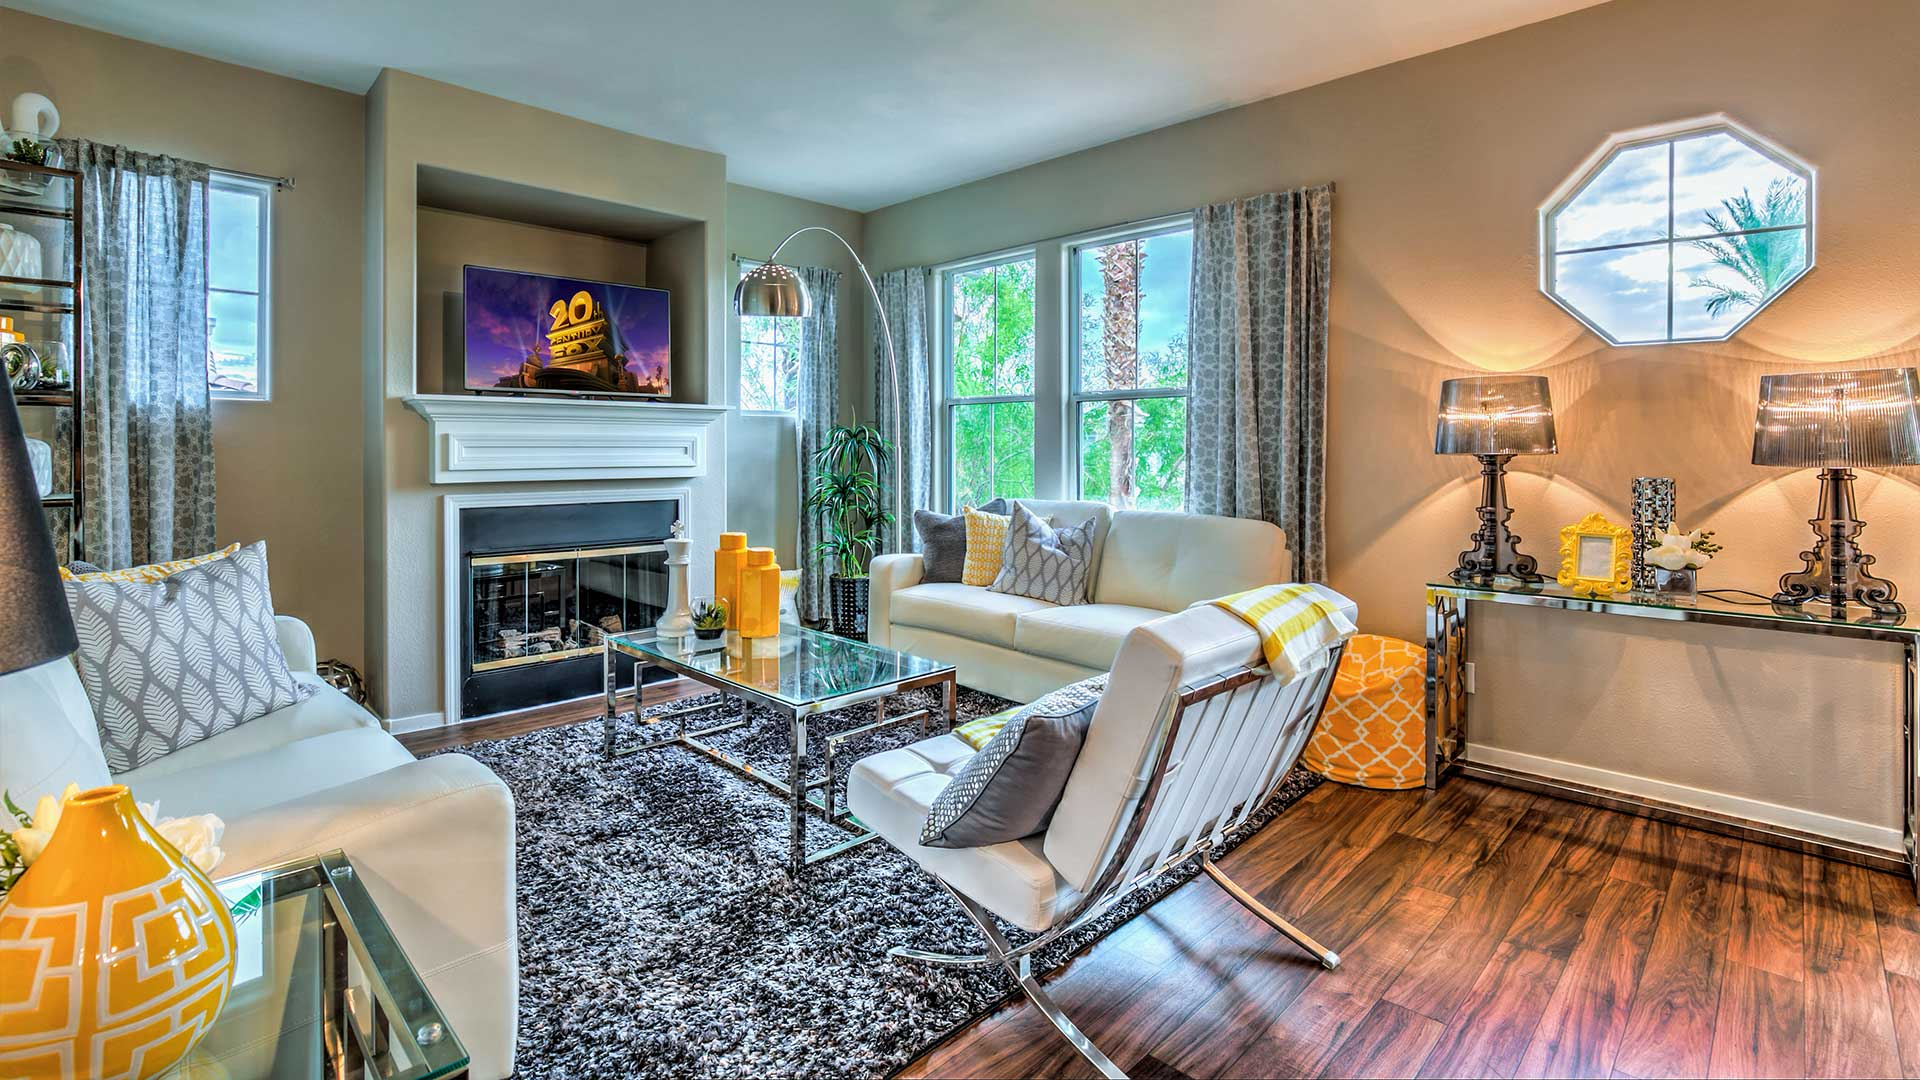 A comfortable living room with a soft rug, plush couches, and a warm fireplace.